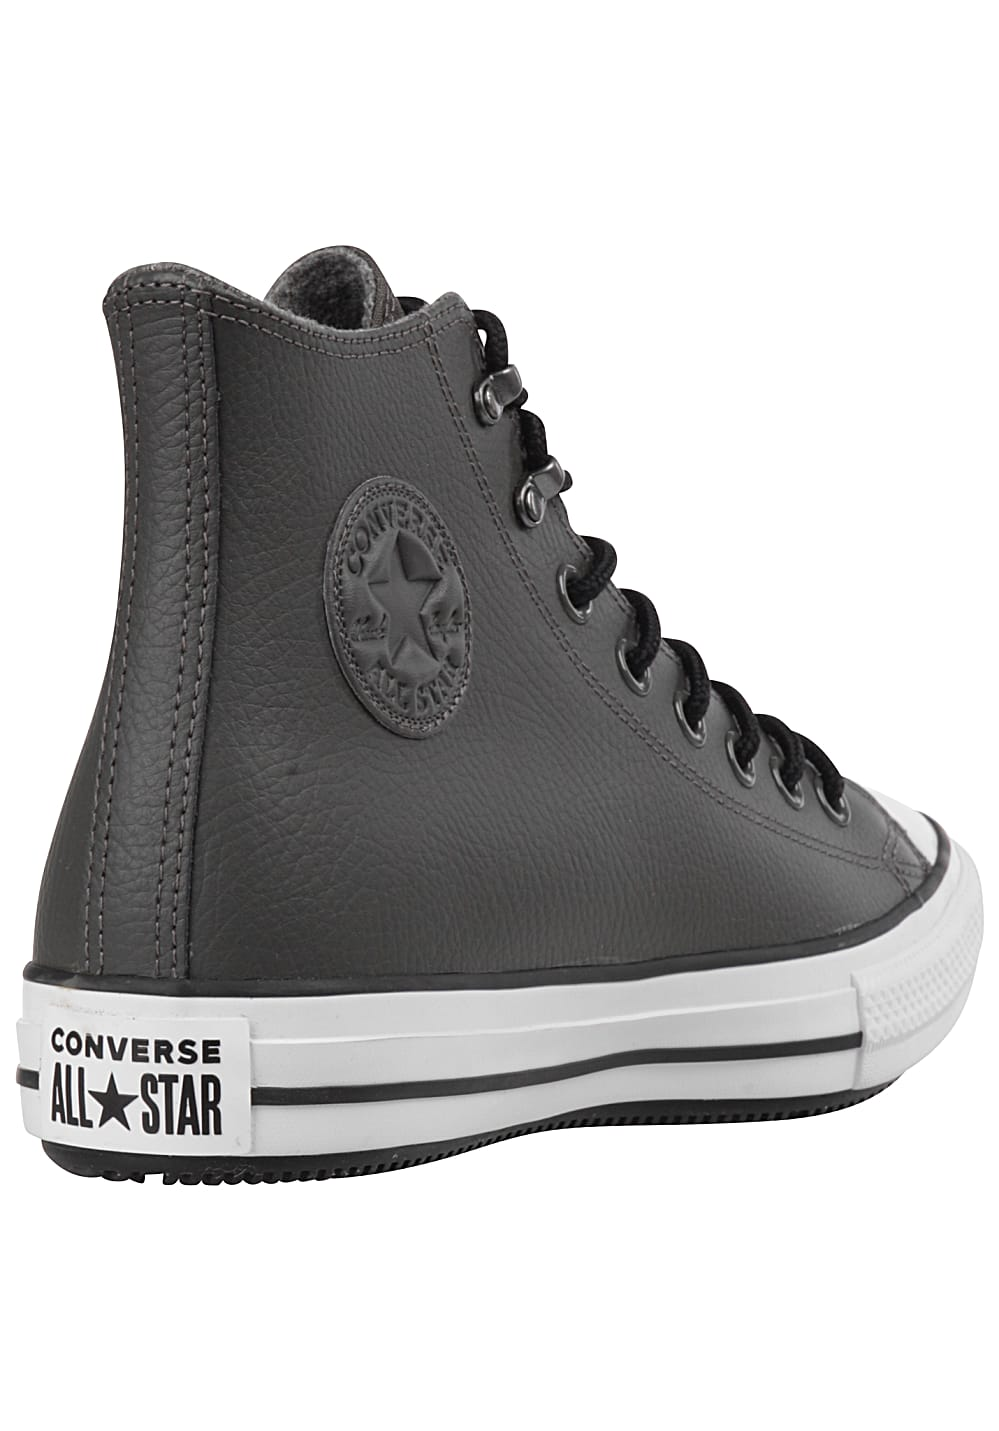 half off afa1e be719 Converse Chuck Taylor All Star Winter Hi - Sneaker für Herren - Grau